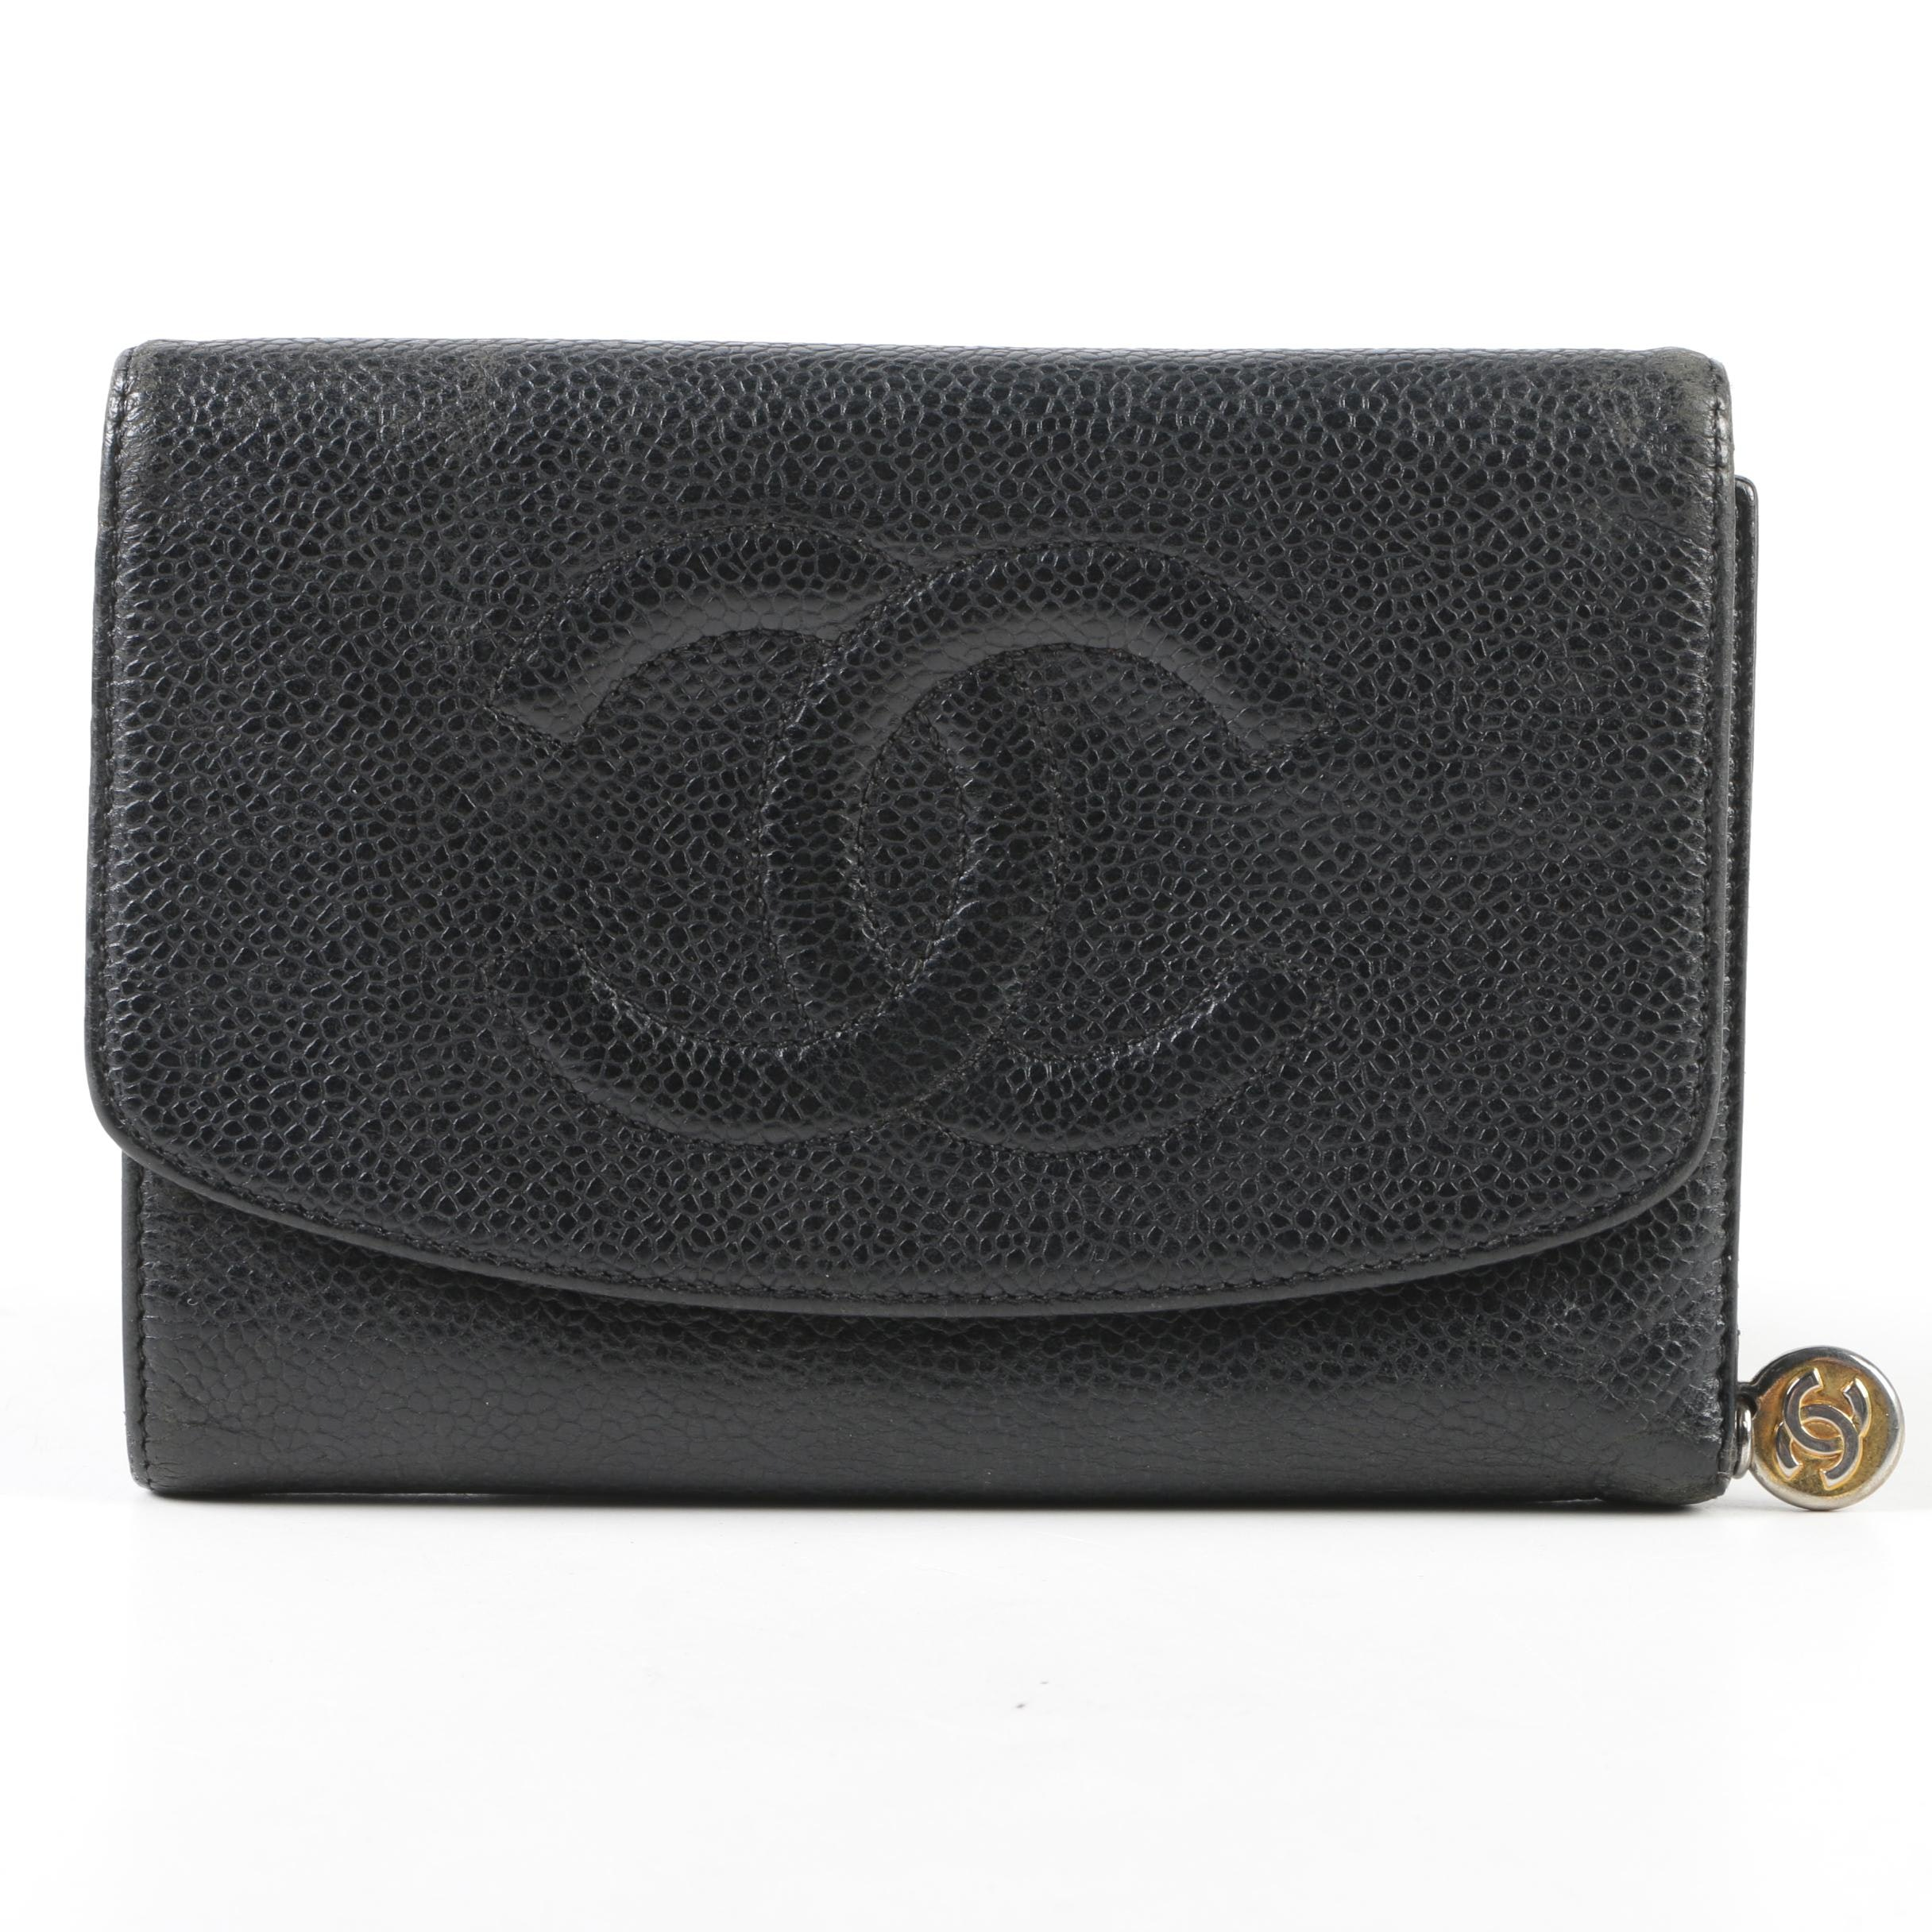 Chanel Black Caviar Leather CC Logo Trifold French Wallet